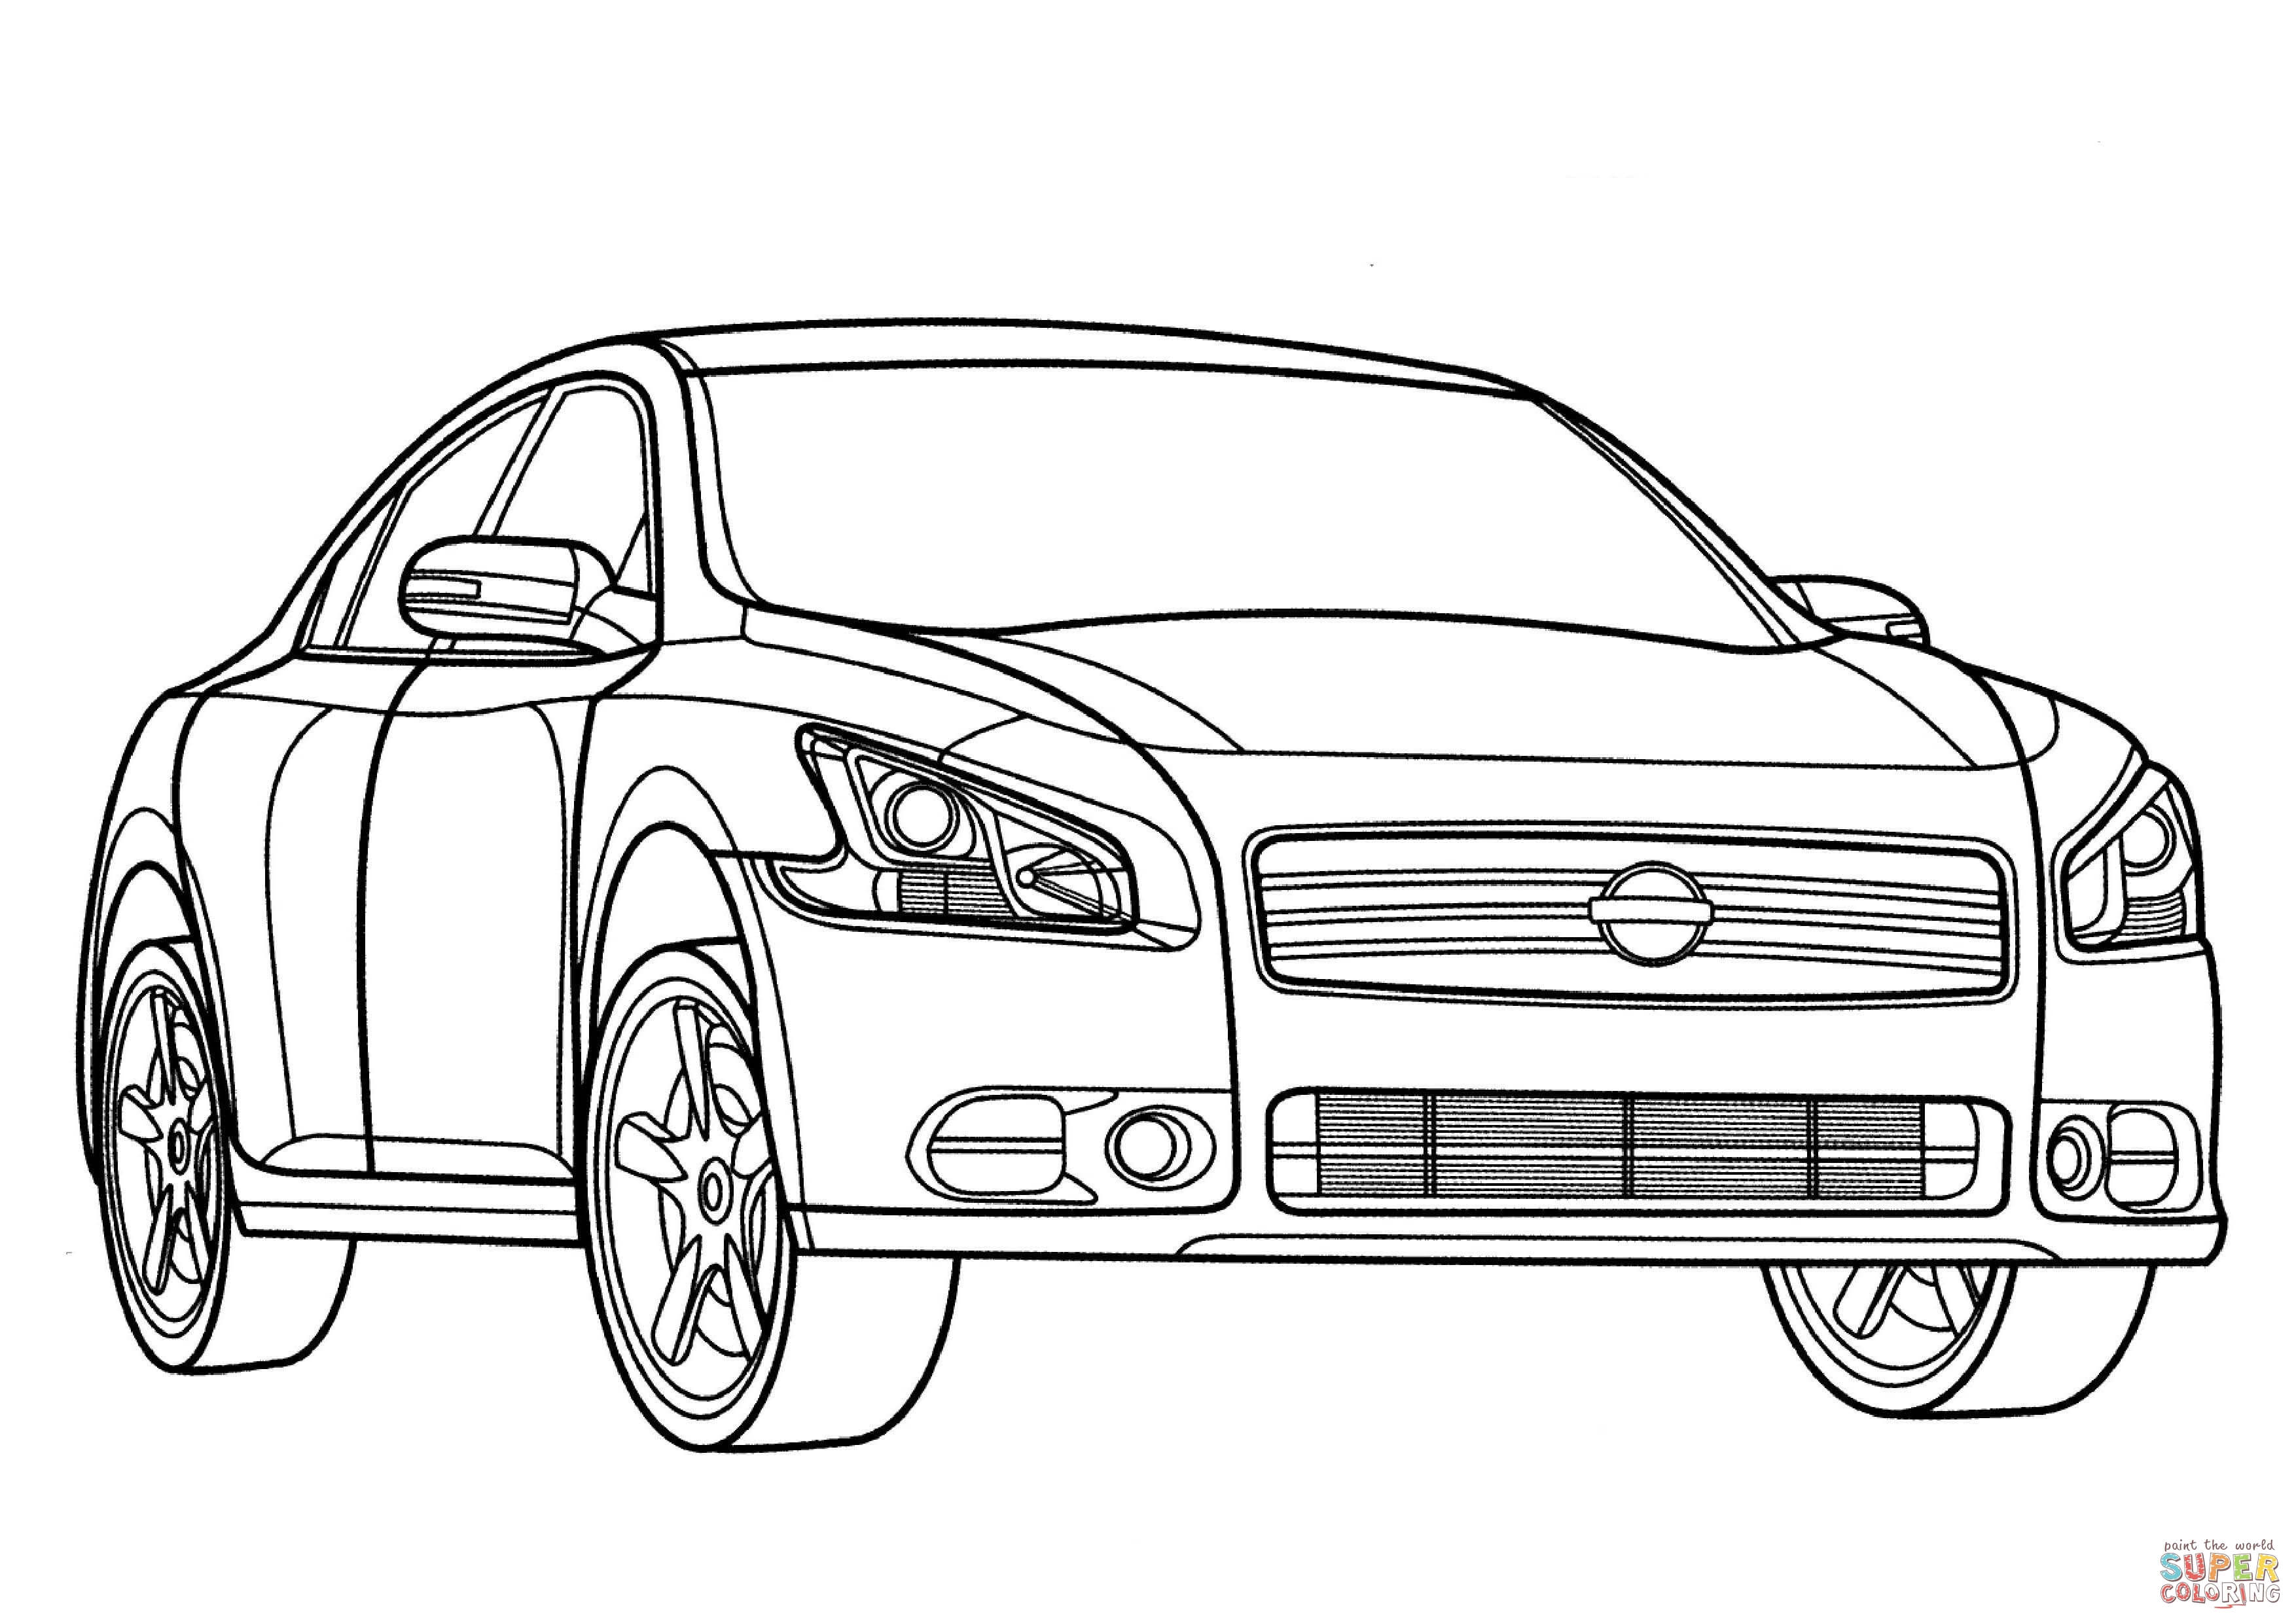 Sketch Of Nissan 240sx Coloring Pages